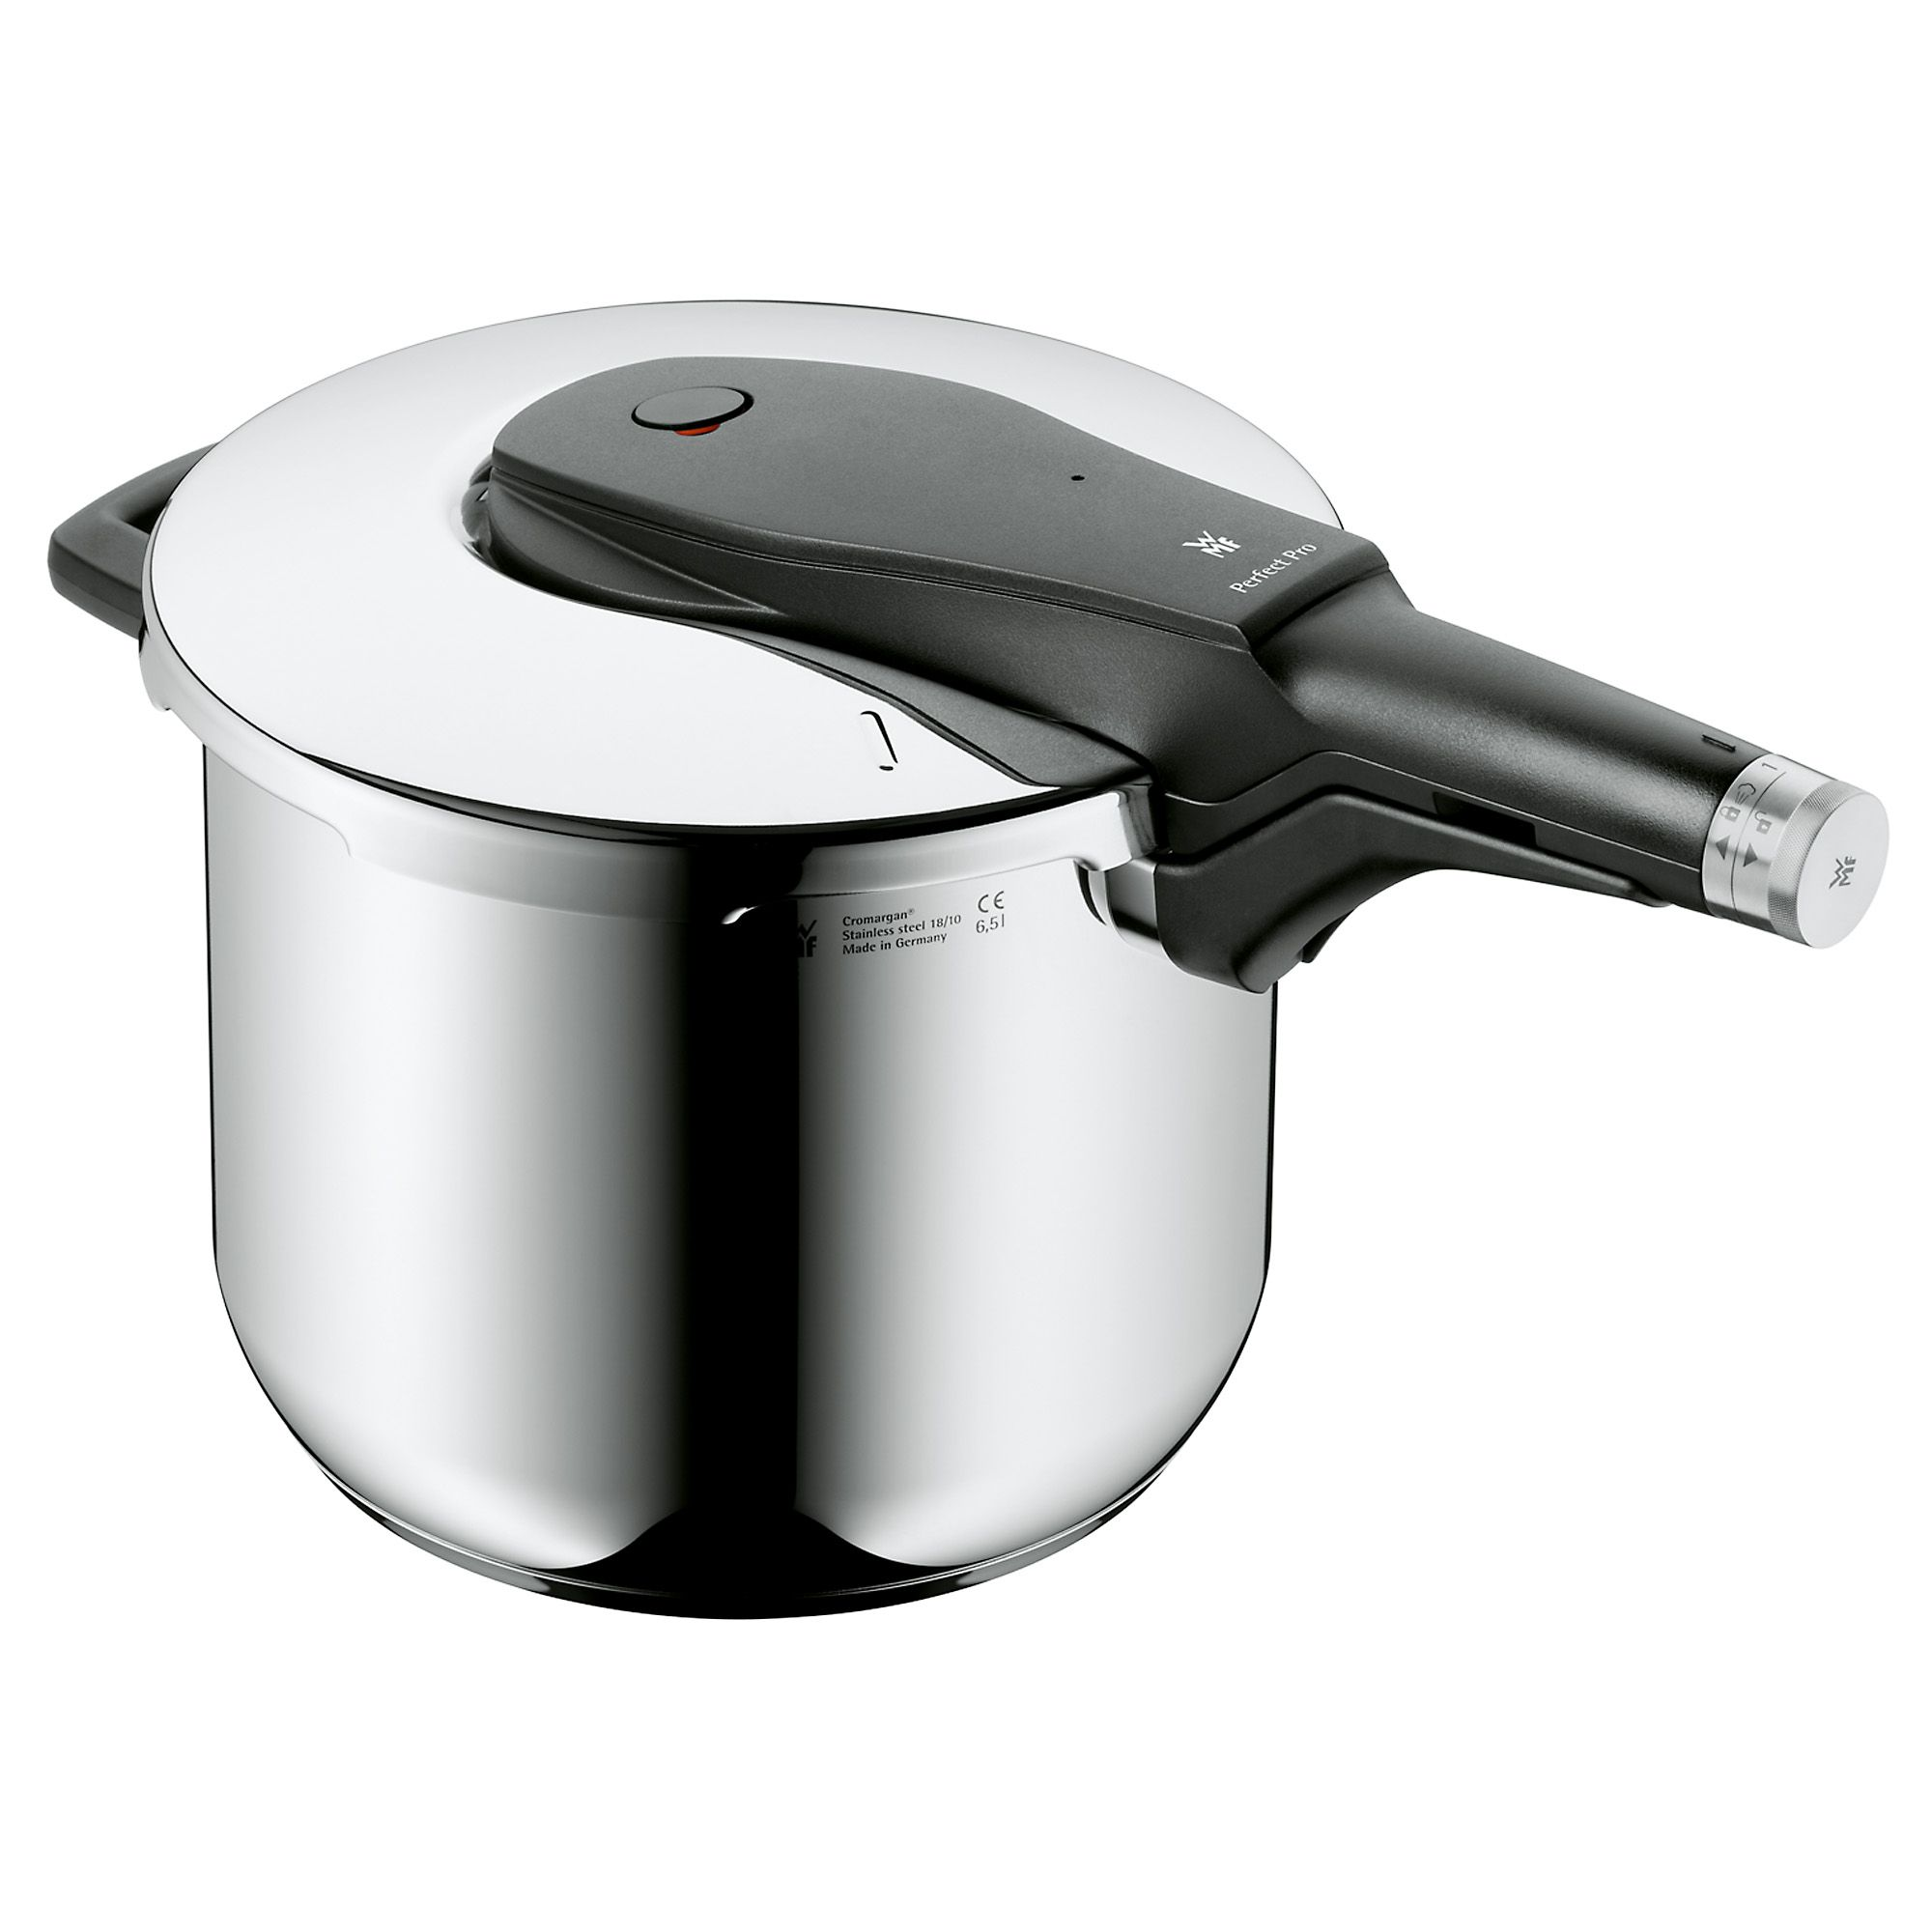 Perfect pro pressure cooker 6.5 l